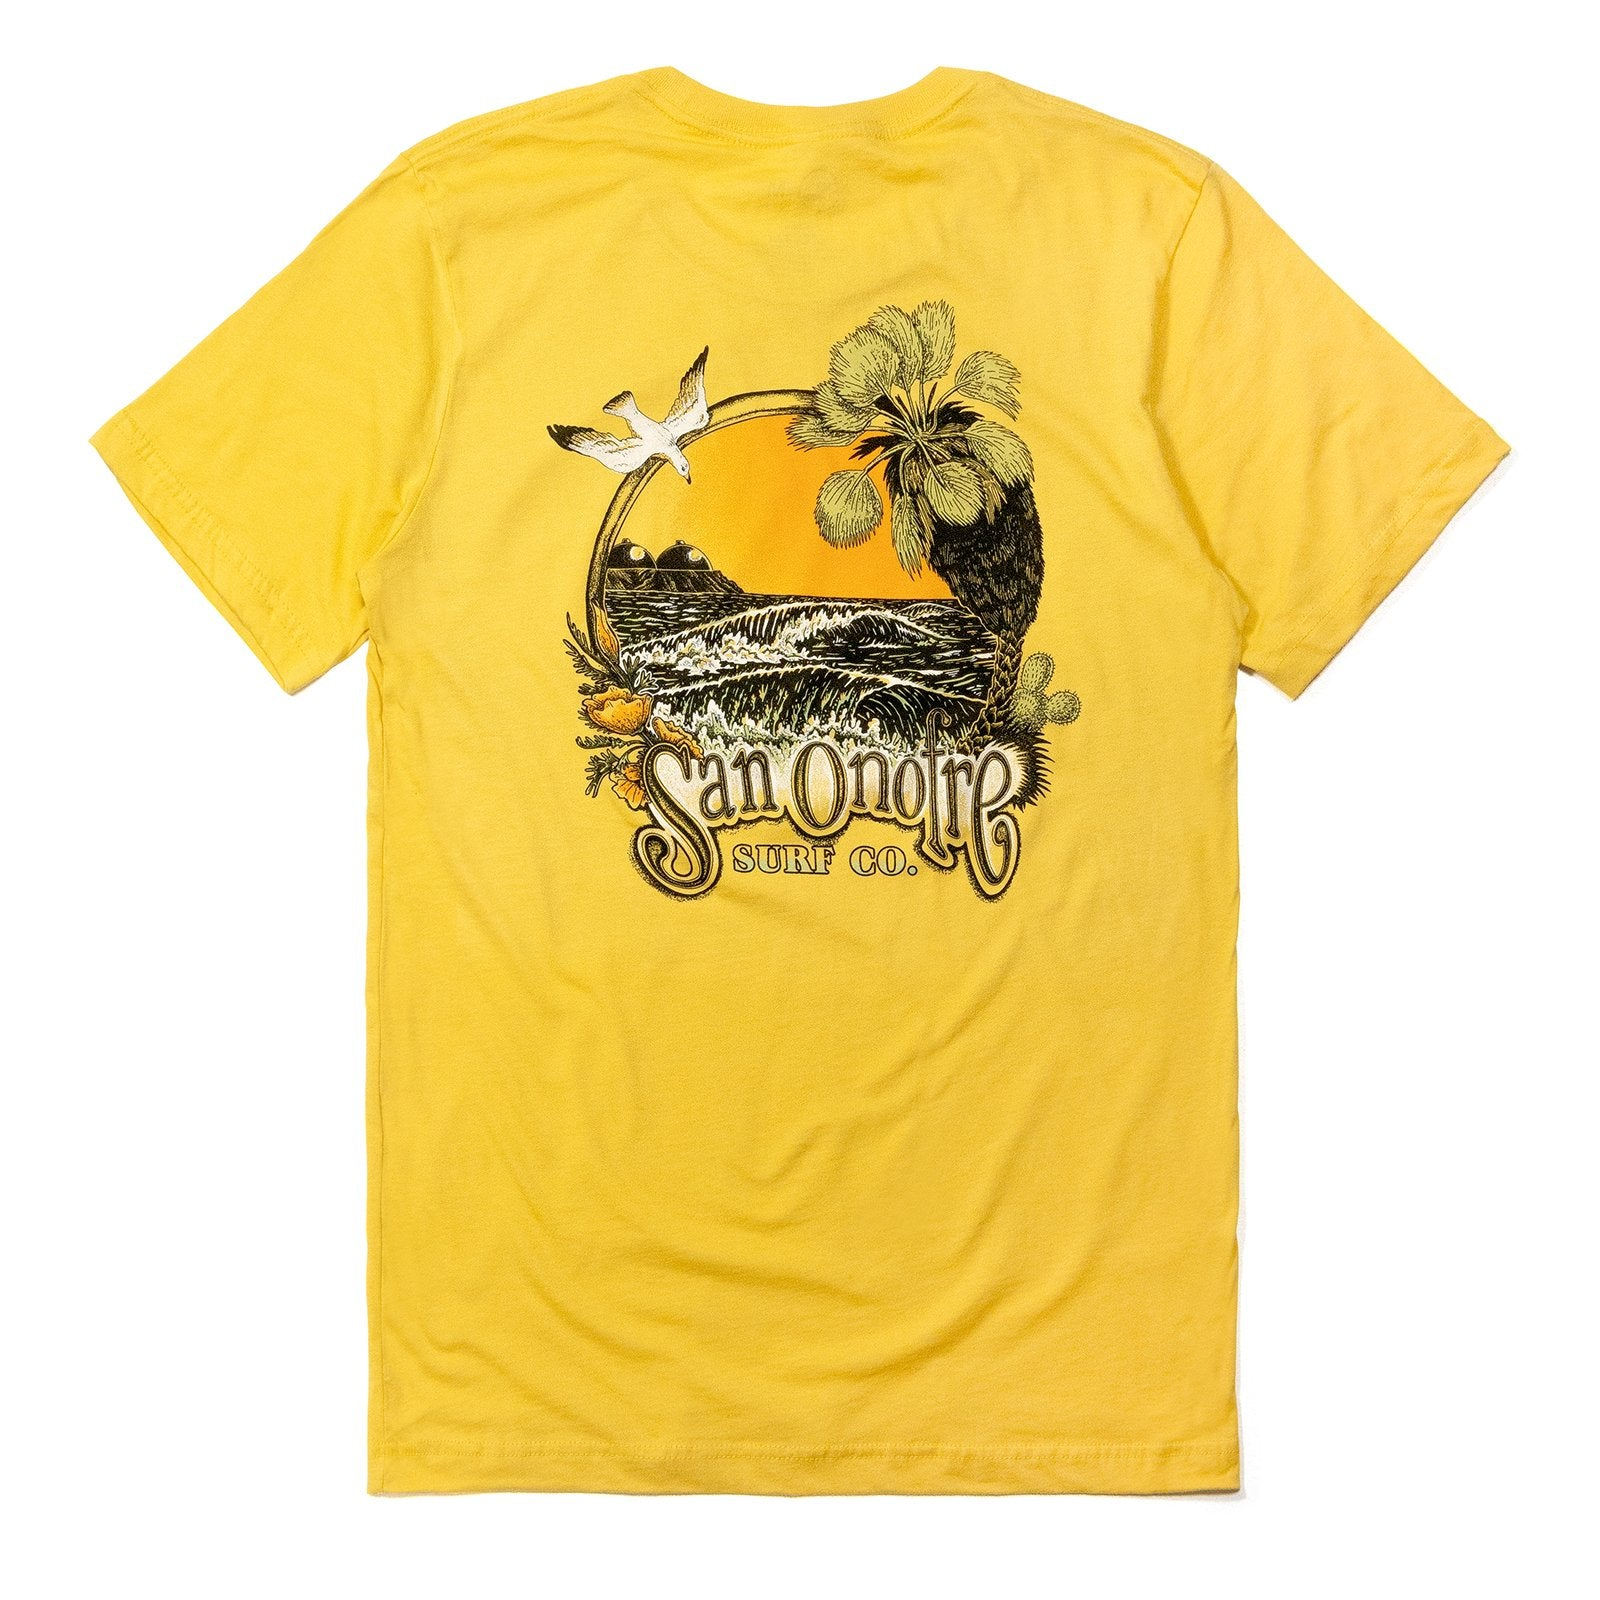 San Onofre Surf Clothing Co. Daydream T - Maize Yellow